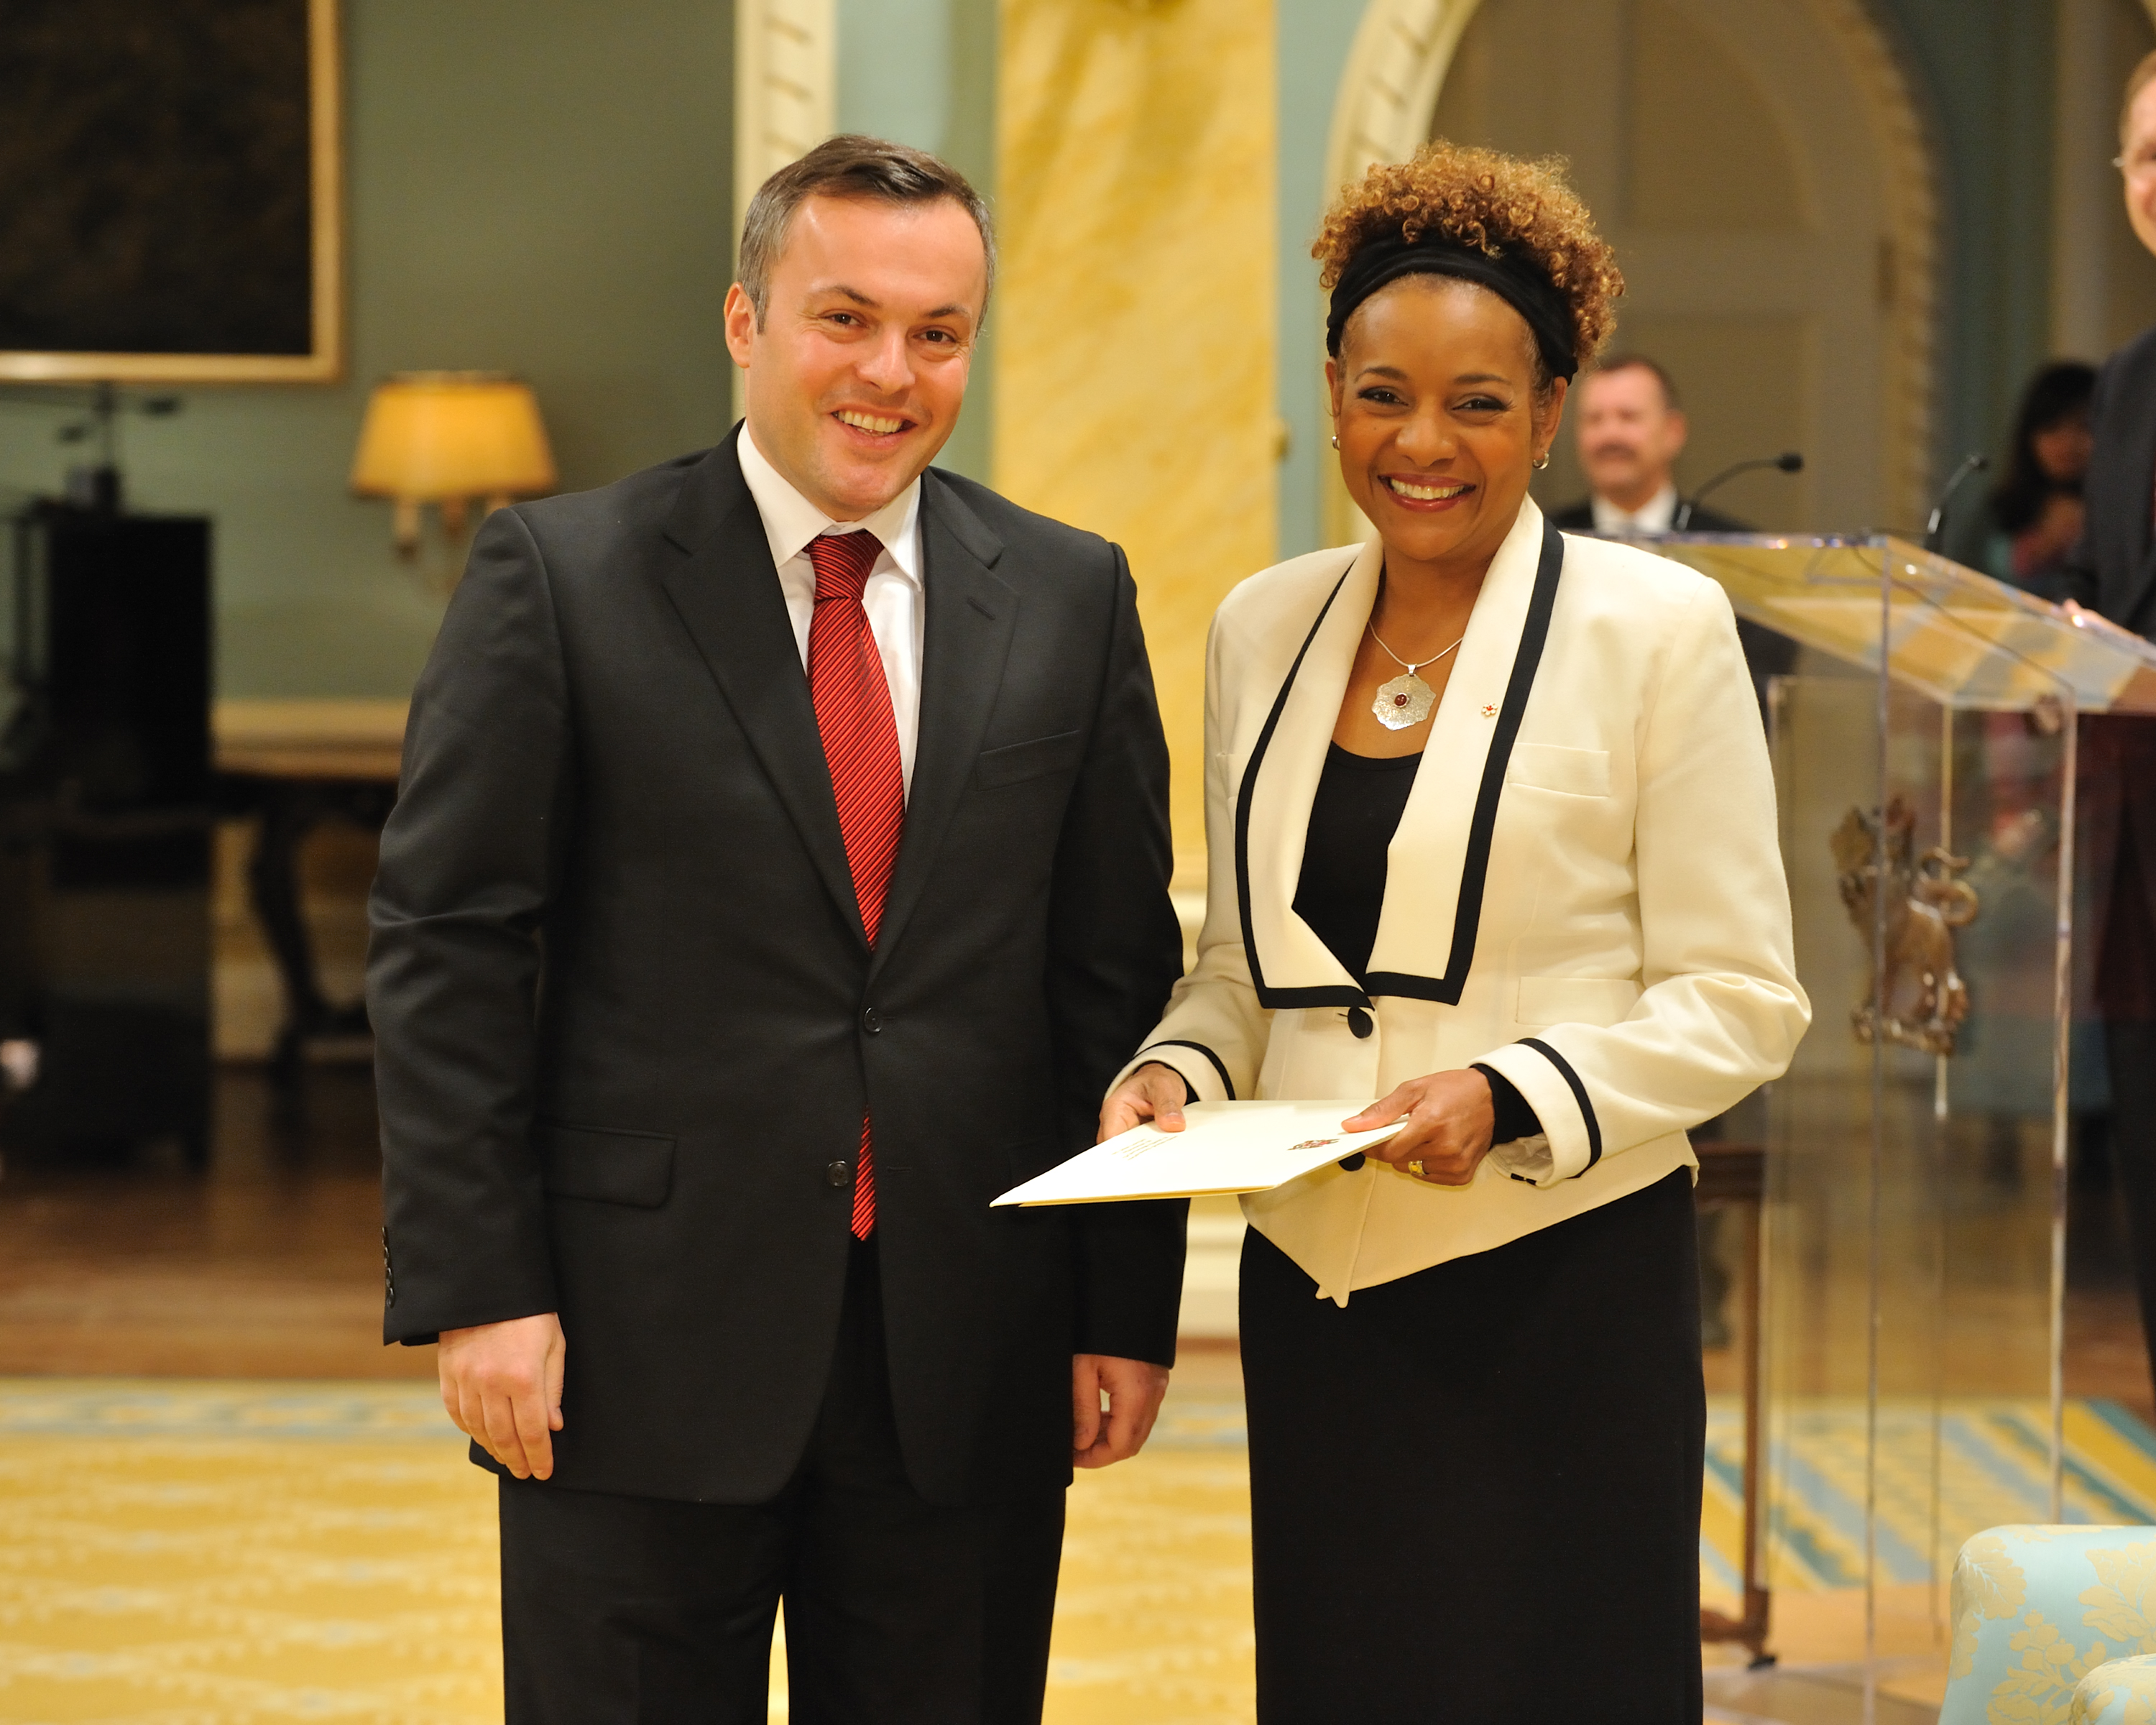 The Governor General received the credentials of His Excellency Batu Kutelia, Ambassador of the Republic of Georgia.